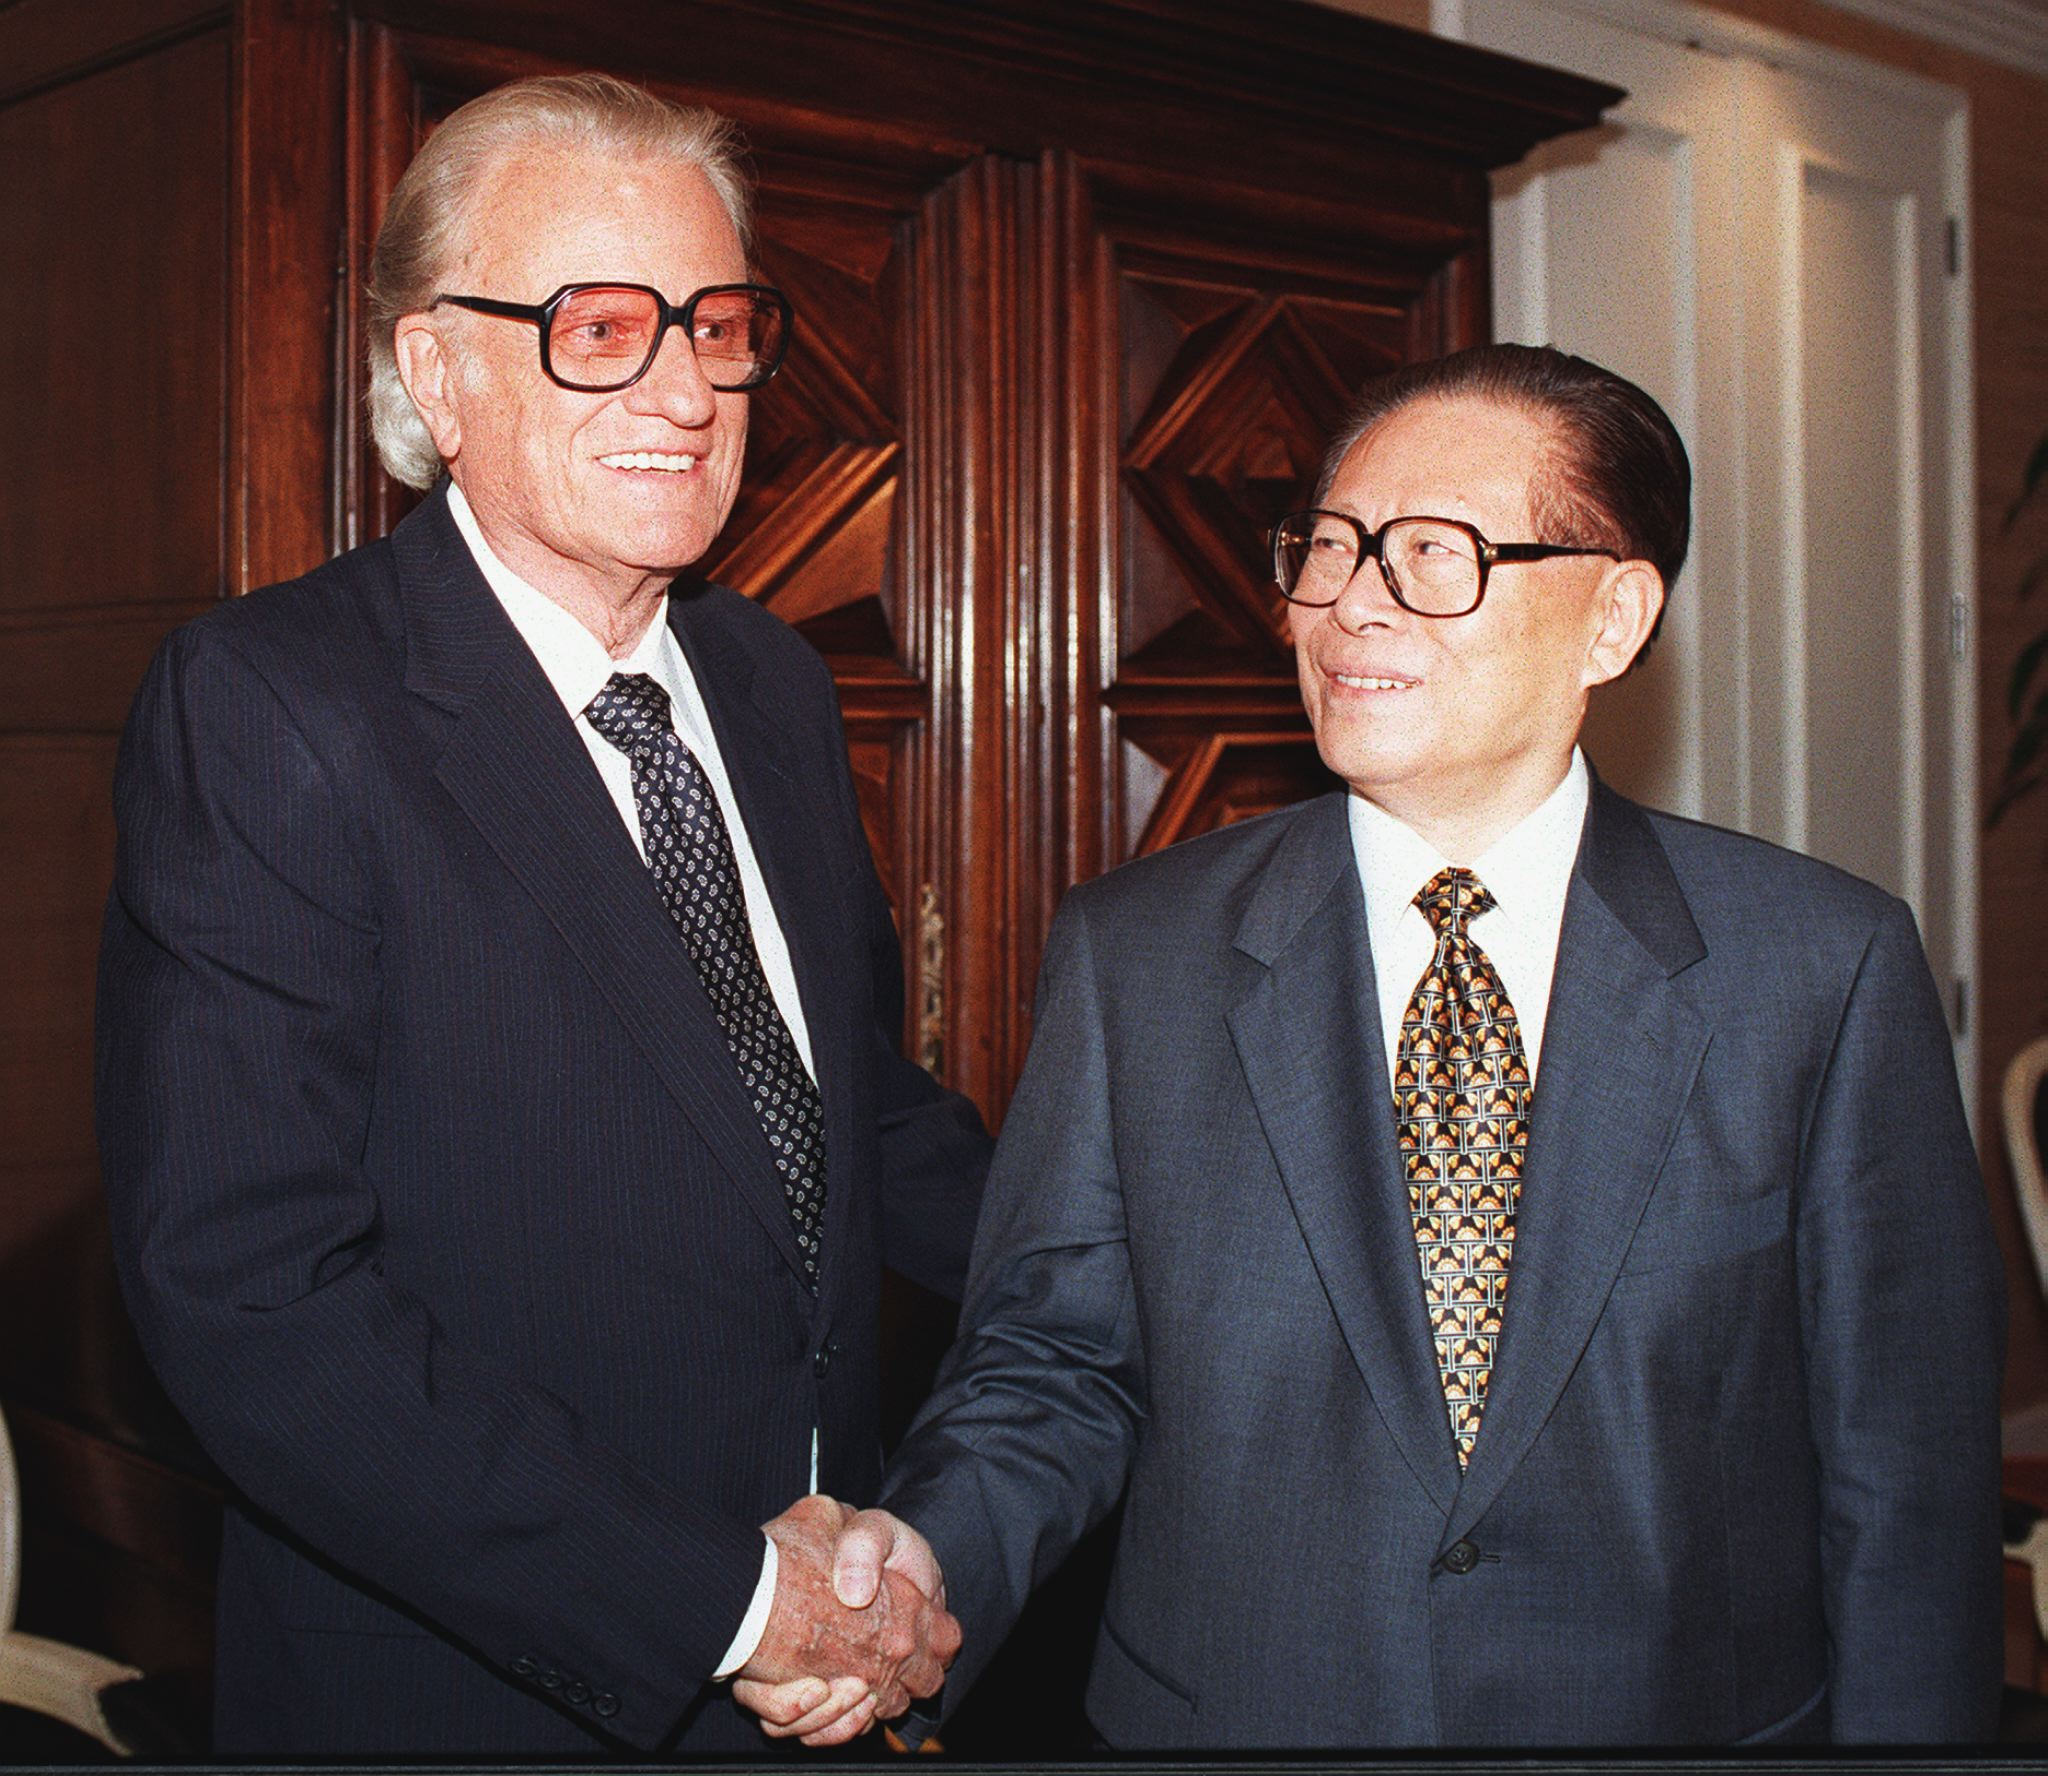 Billy Graham and the President of China